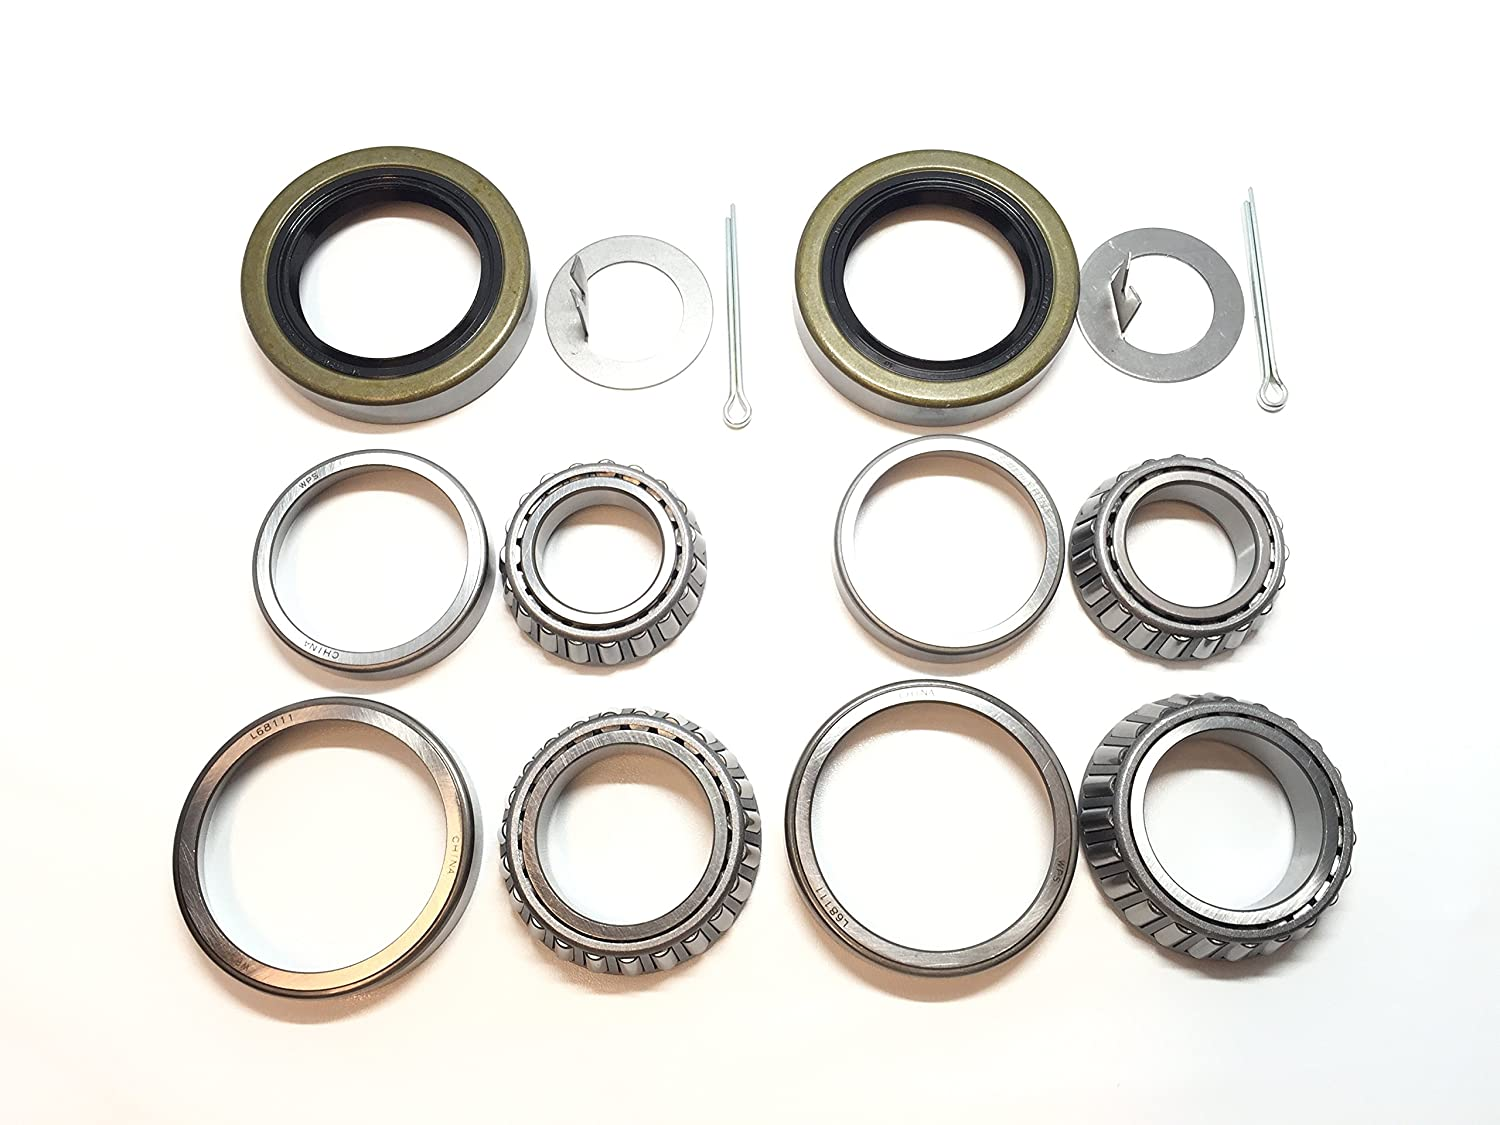 (Set of 2) WPS 3500# Trailer Axle Bearing Kit L68149 L44649 Grease Seal 10-19 I.D. 1.719'' for #84 Spindle 812wK2uxyHL